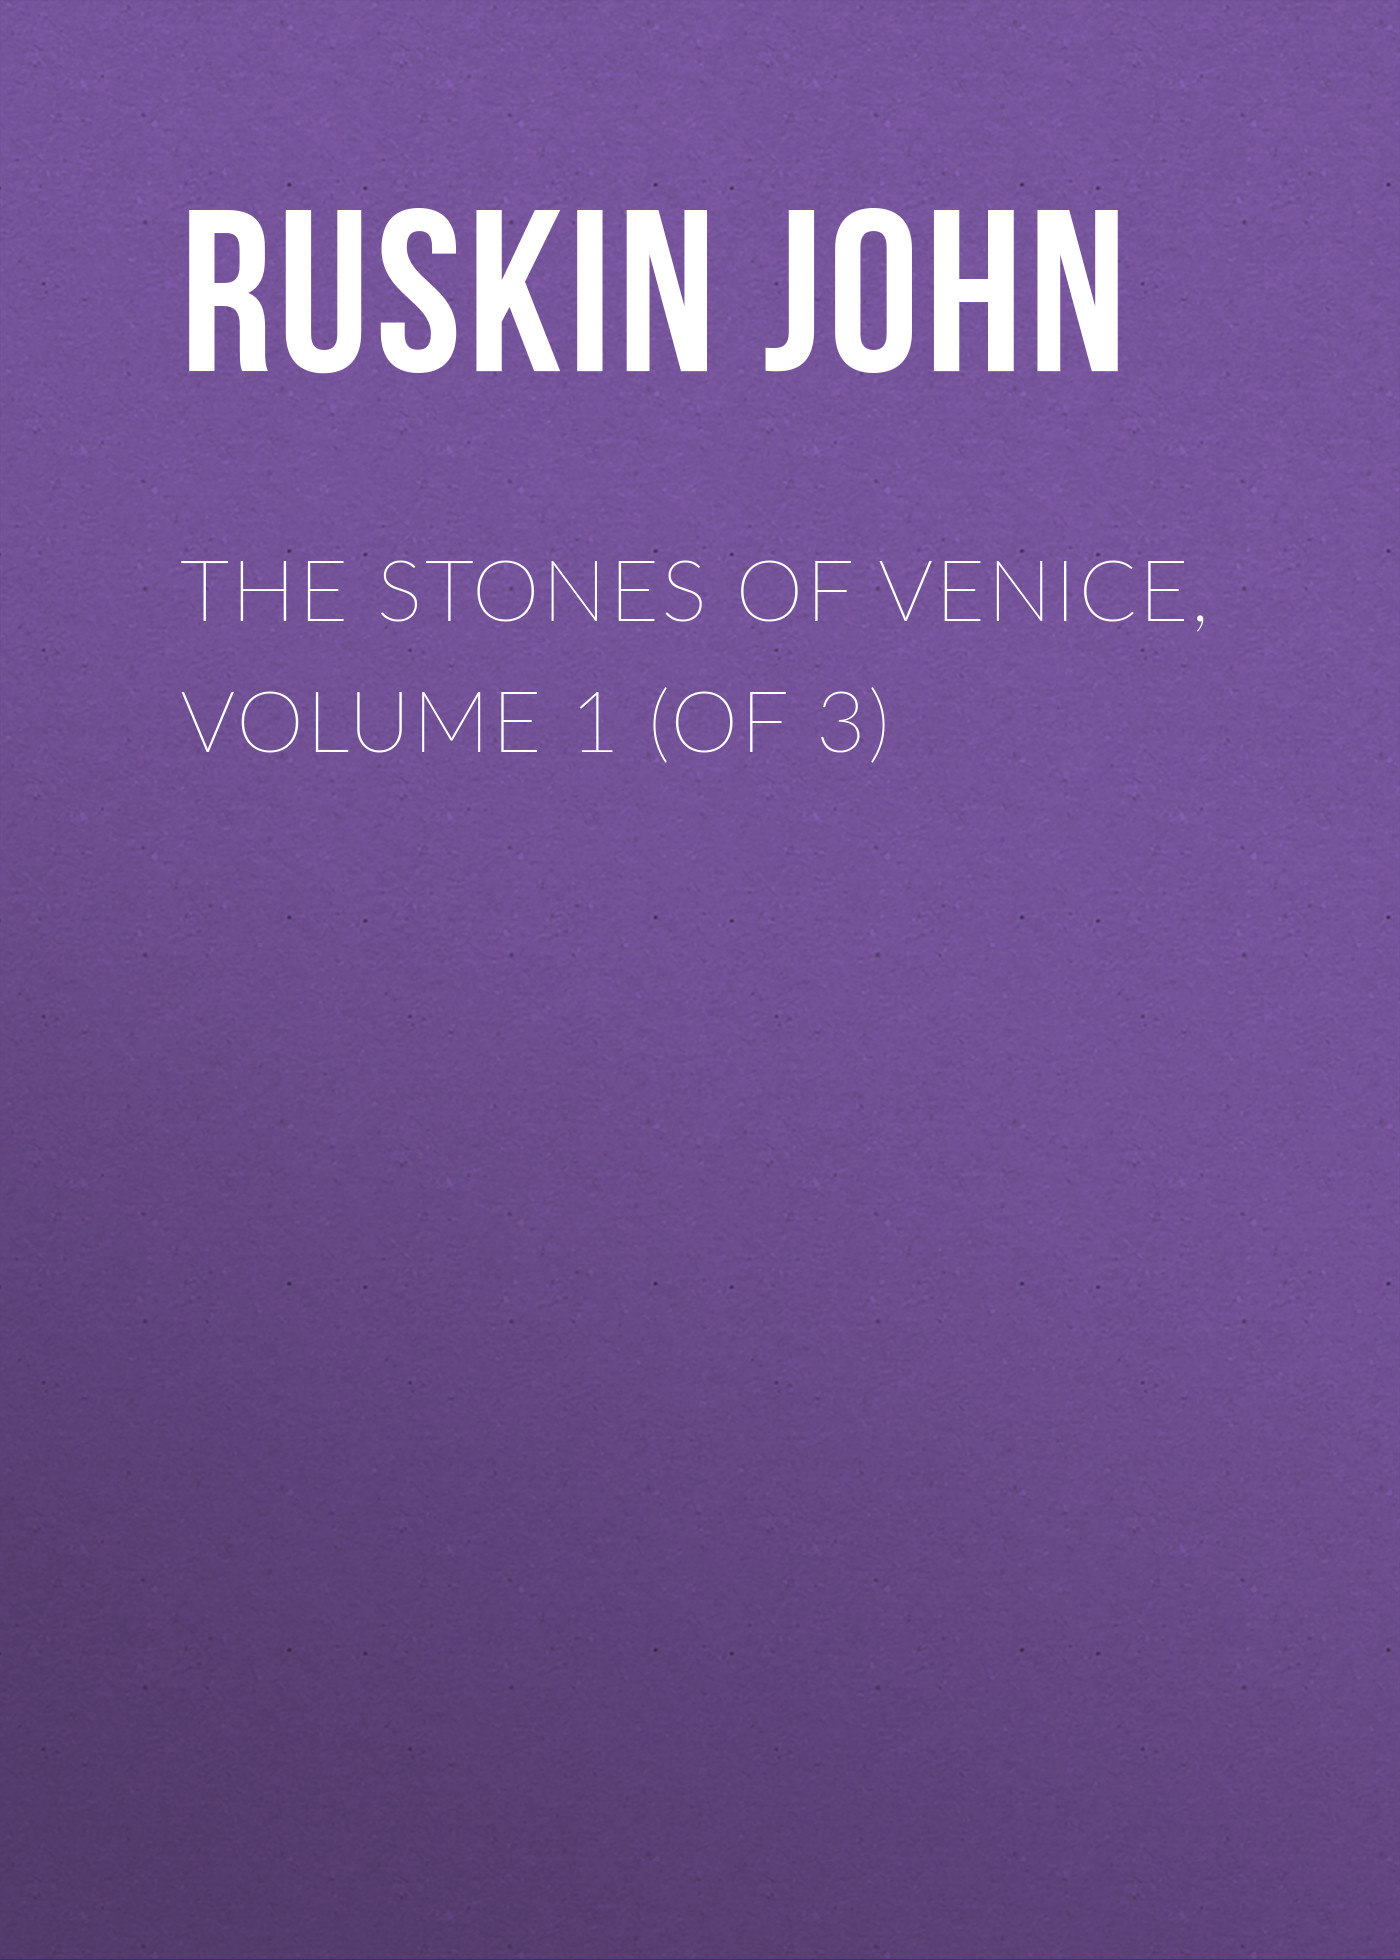 купить Ruskin John The Stones of Venice, Volume 1 (of 3) по цене 0 рублей